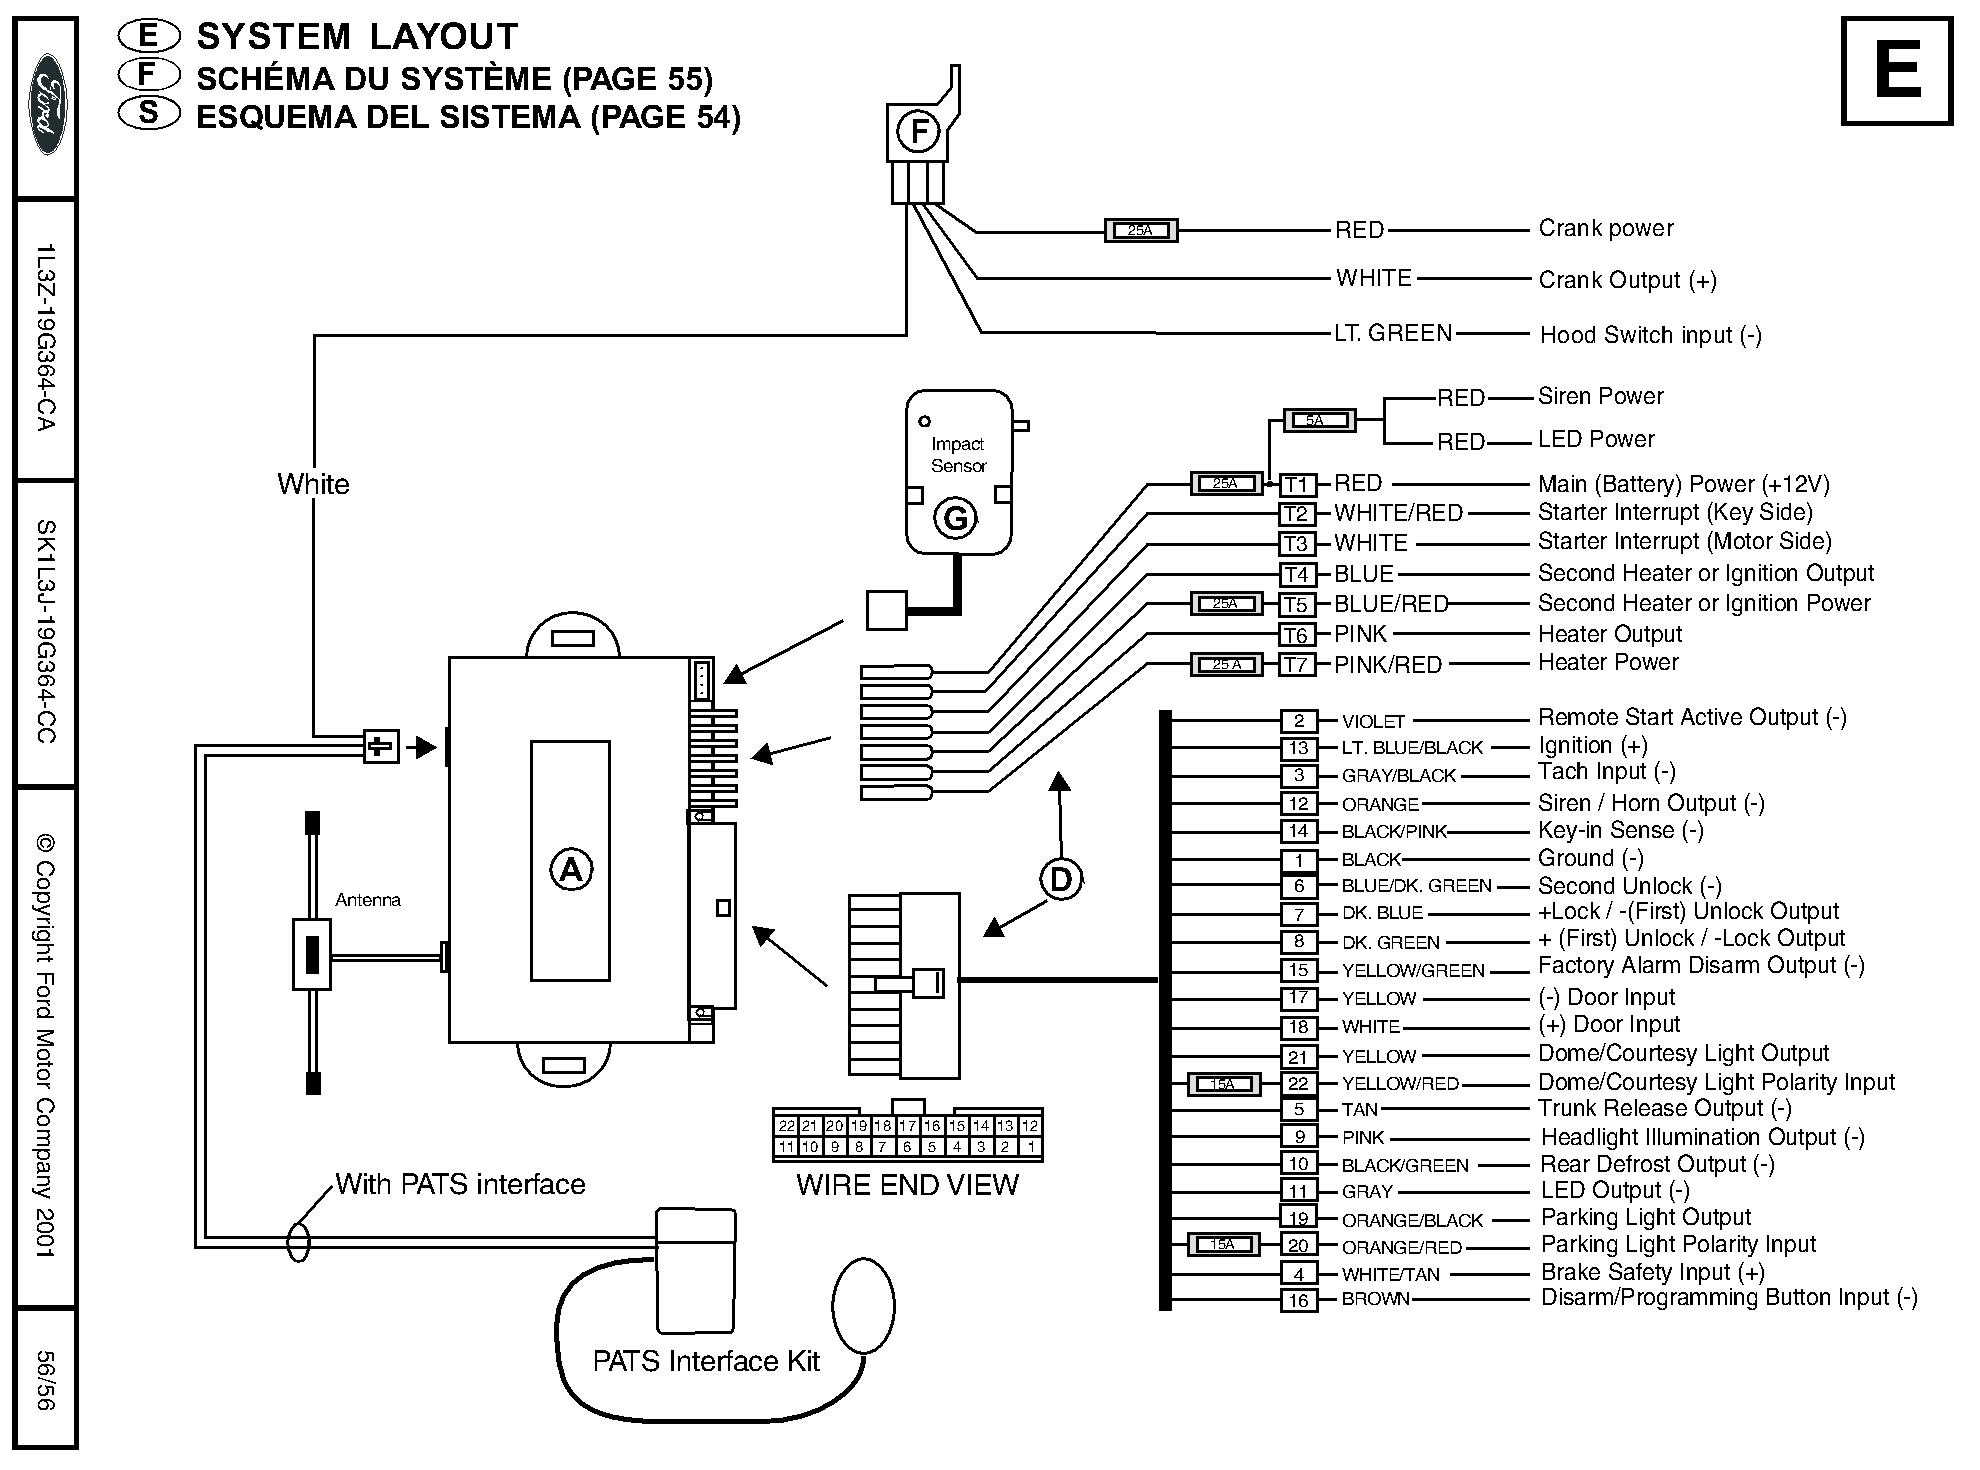 Auto Relay Wiring Diagram 2004 Escape Wiring Diagram Fordgoldstarter Auto  Relay Wiring Diagram 2004 Escapehtml